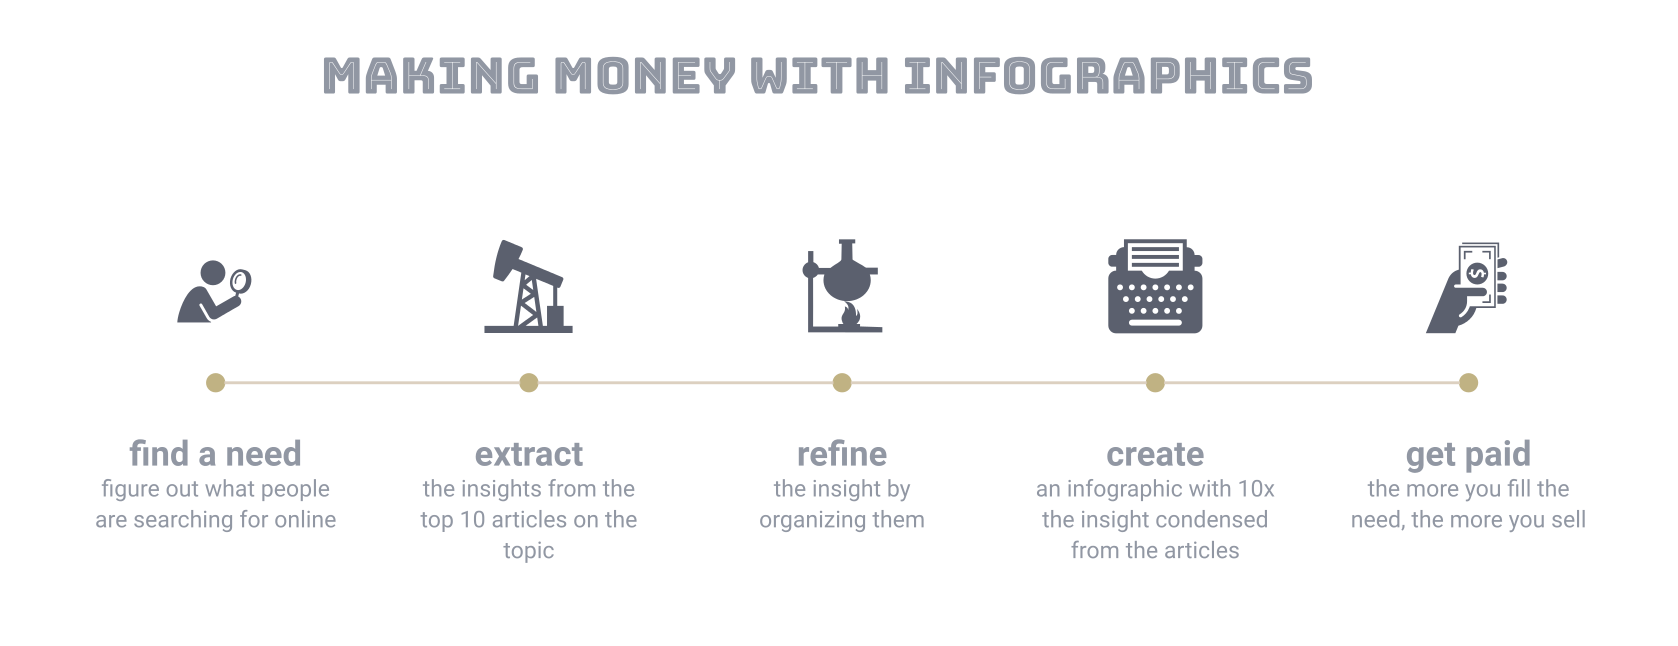 how to make money with infographics adioma